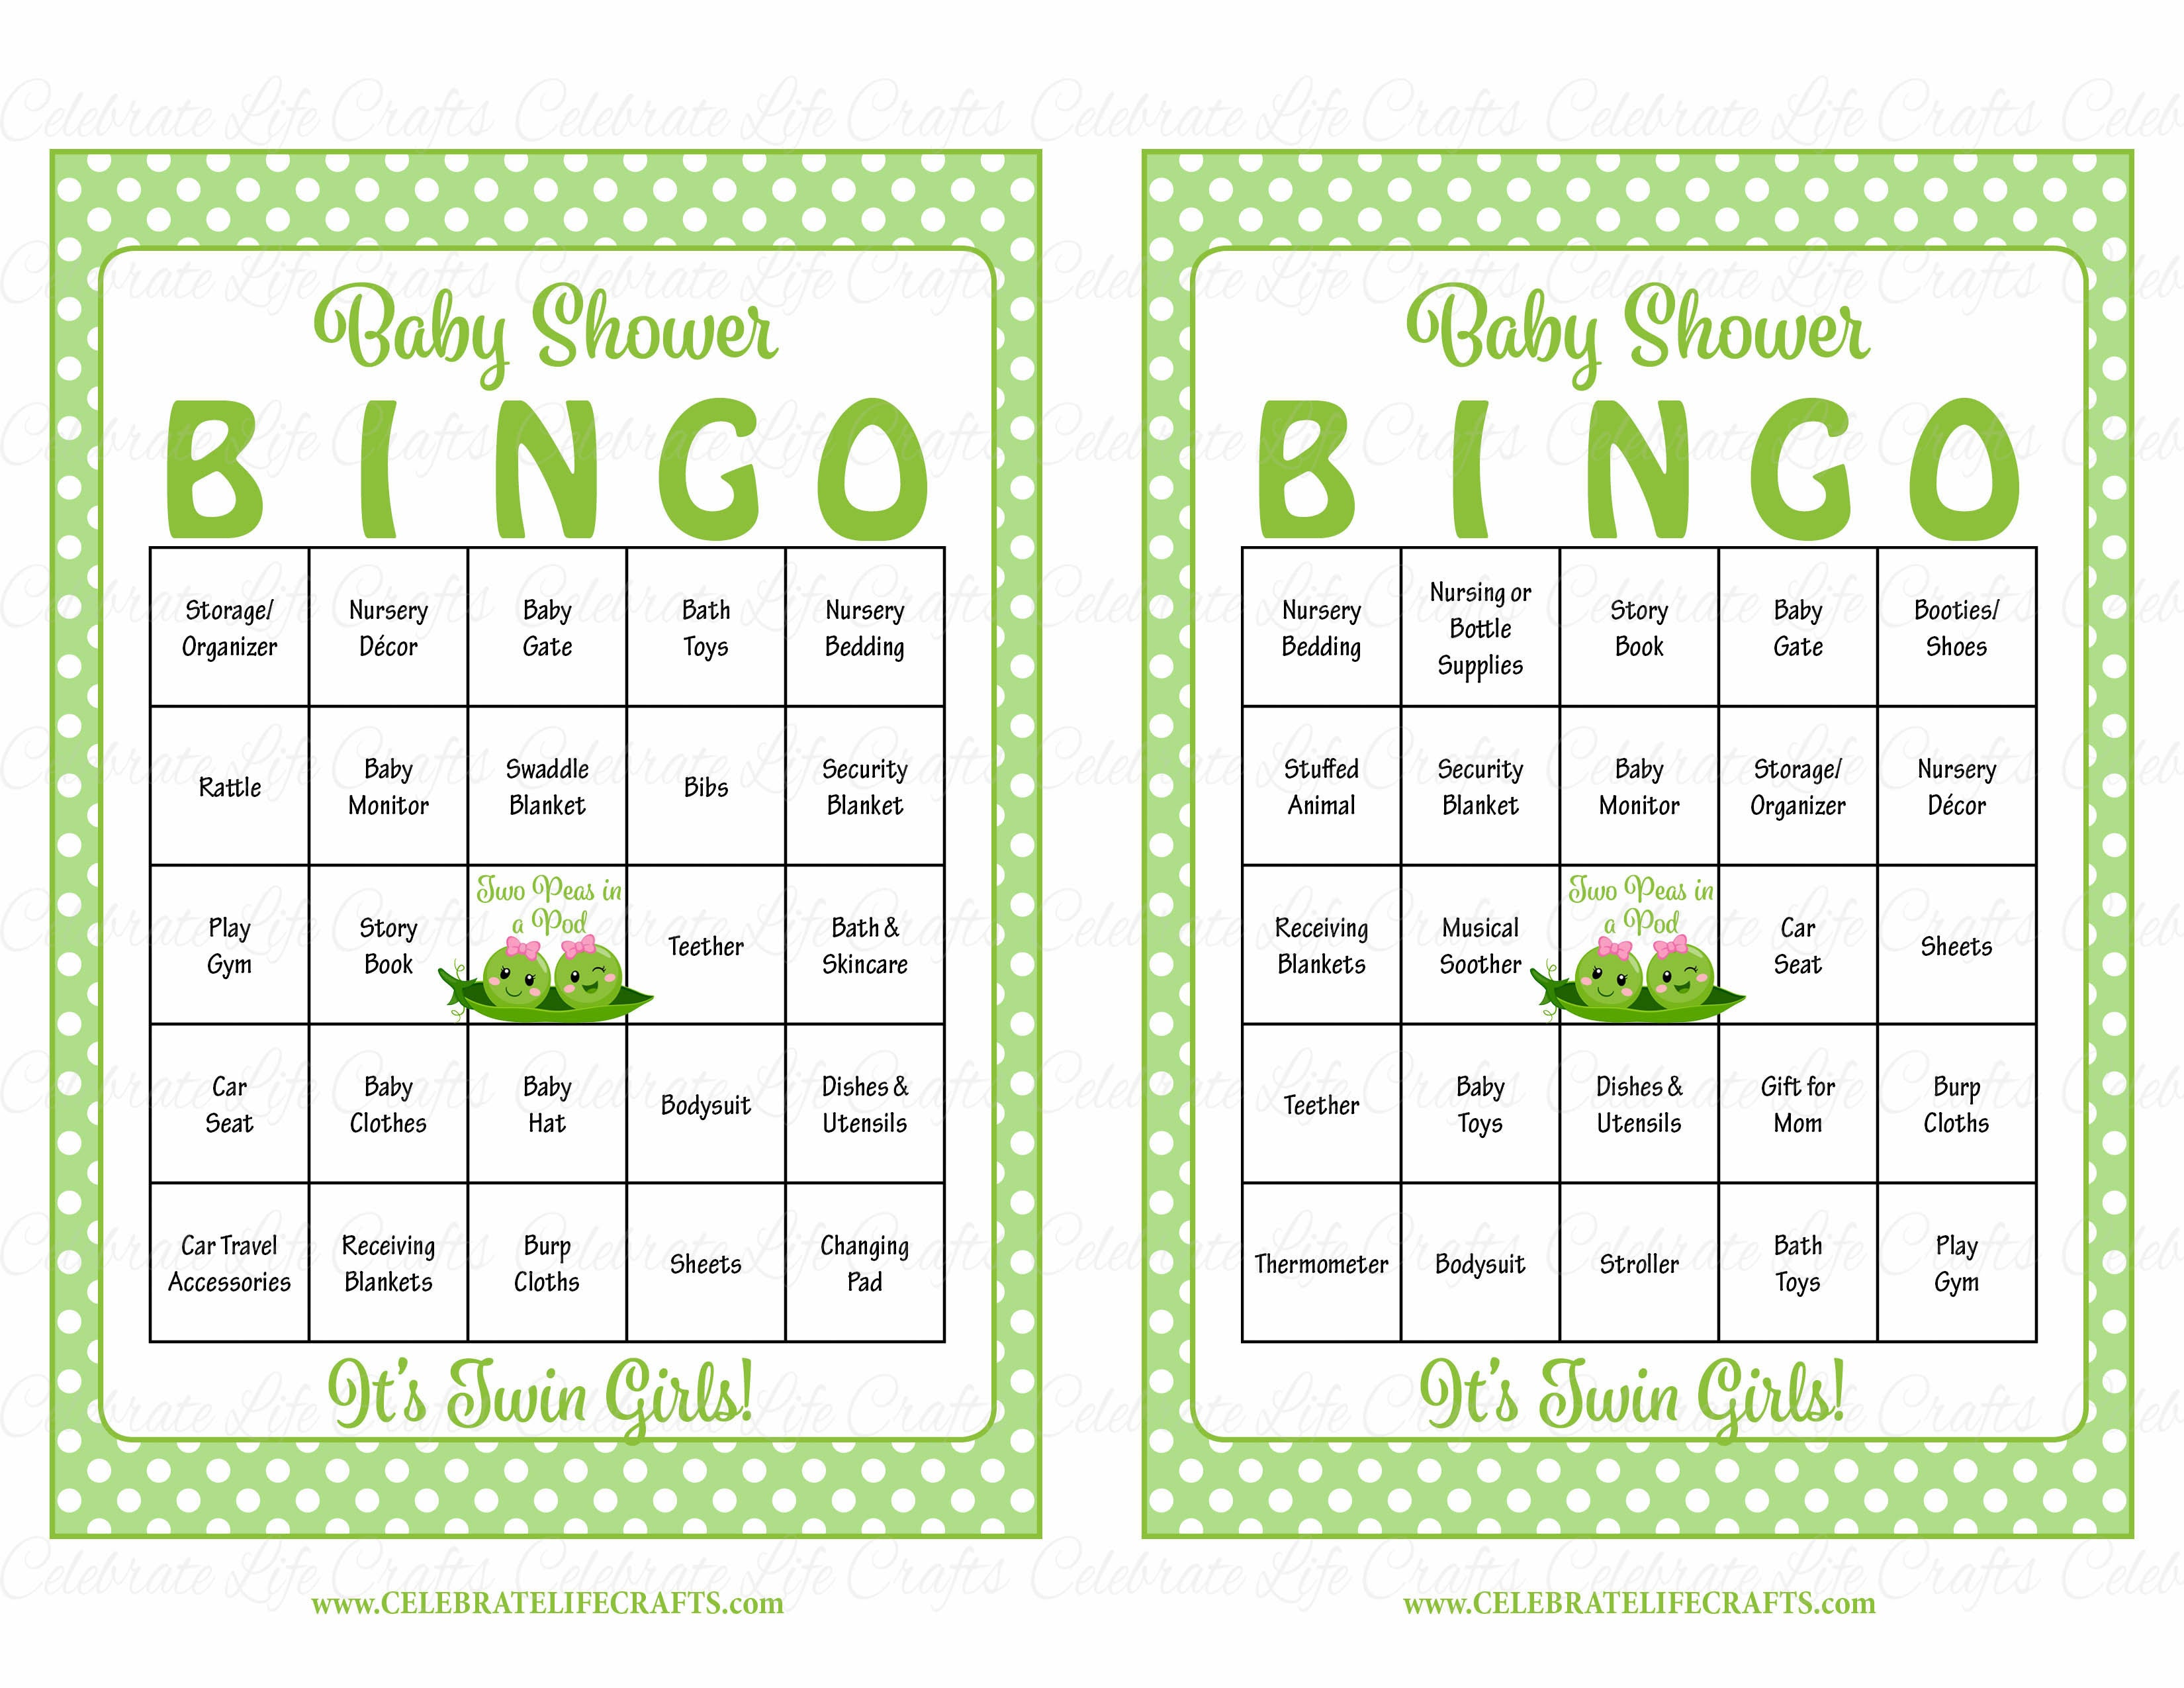 Printables For Baby Shower Image collections Baby Shower Ideas